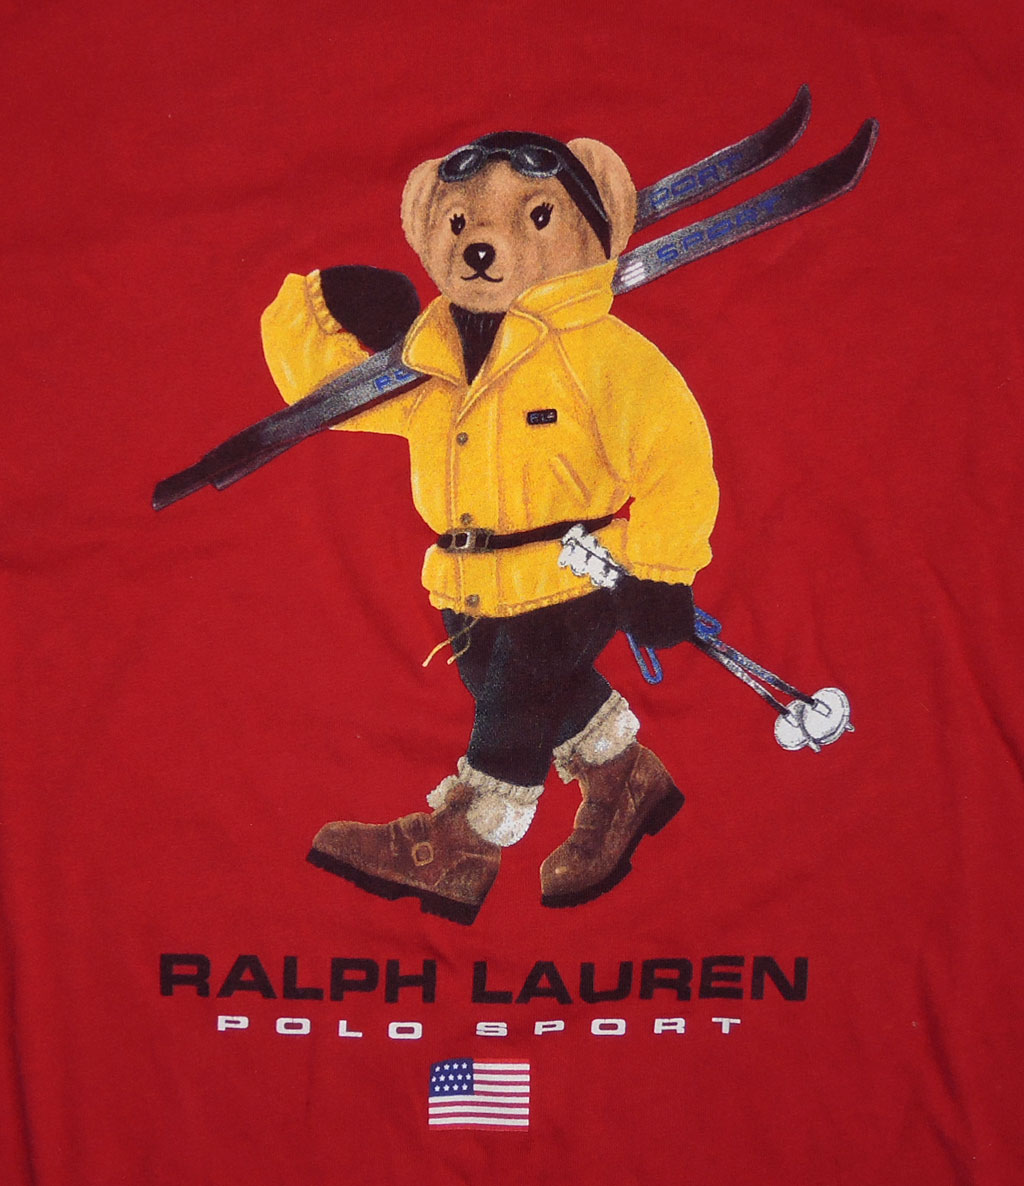 Vtg Ralph Lauren Polo Bear T Shirt Xxl Preppy Tie Carcoat Short